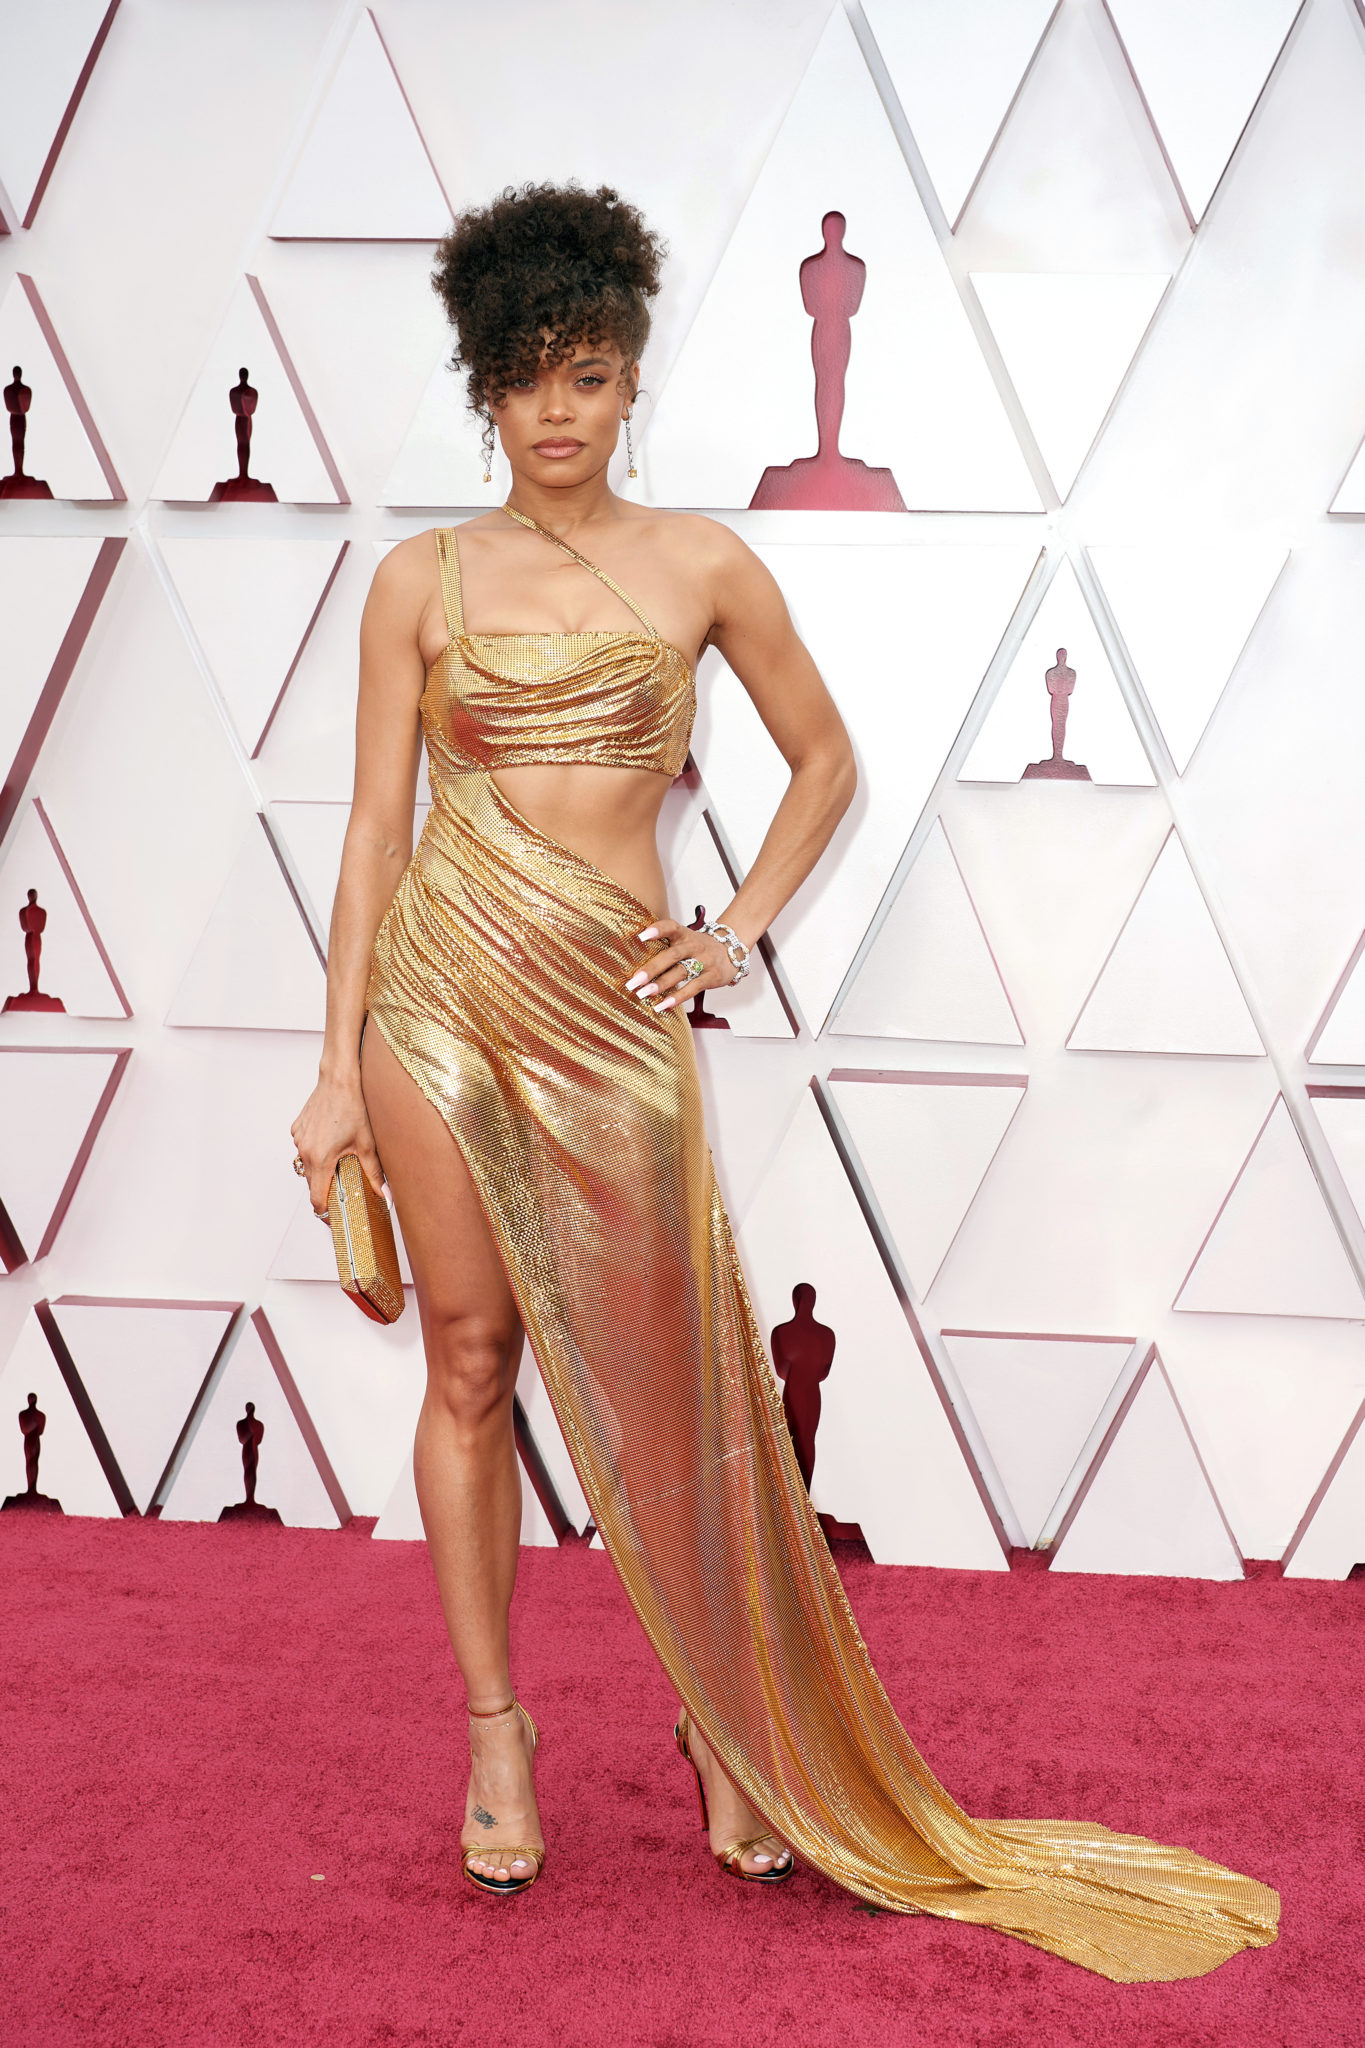 Andra Day at the 93rd Oscars